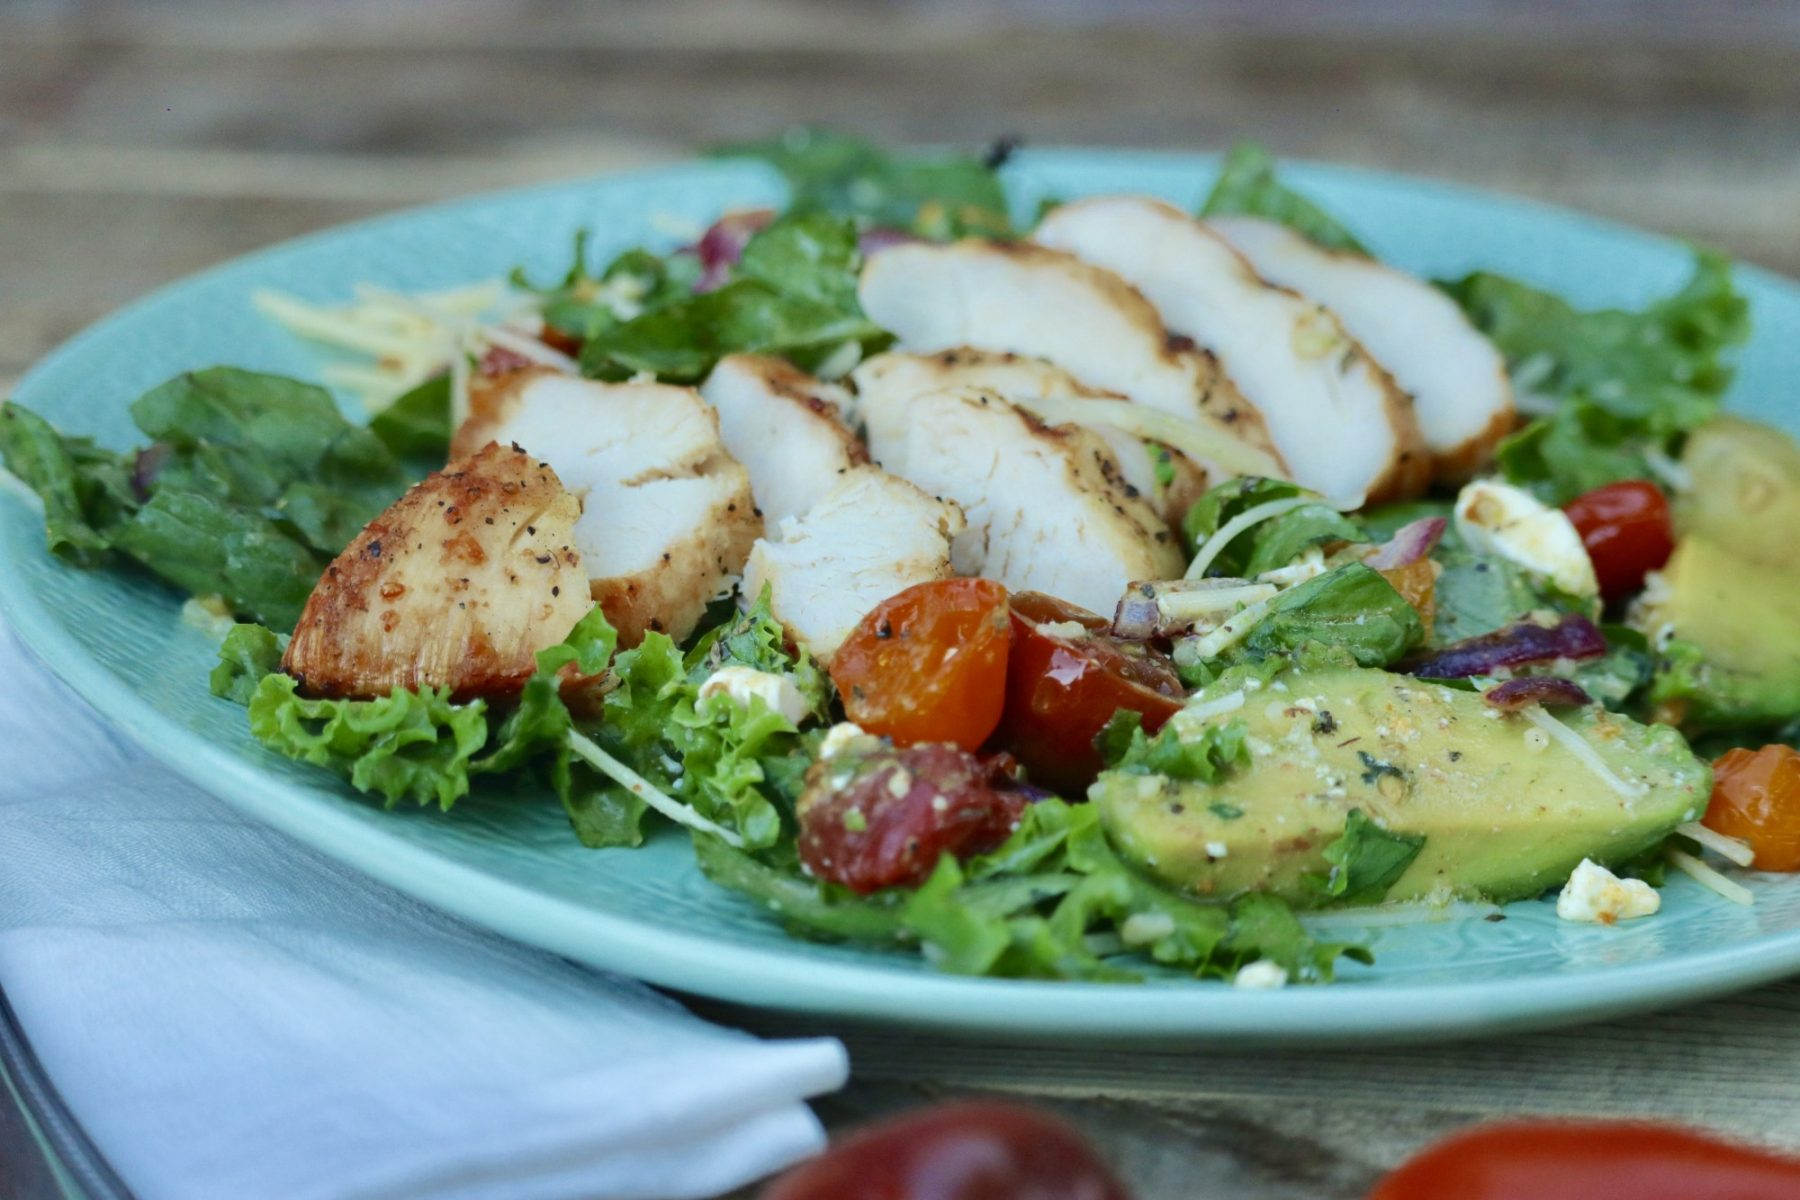 Chicken Salad on a plate